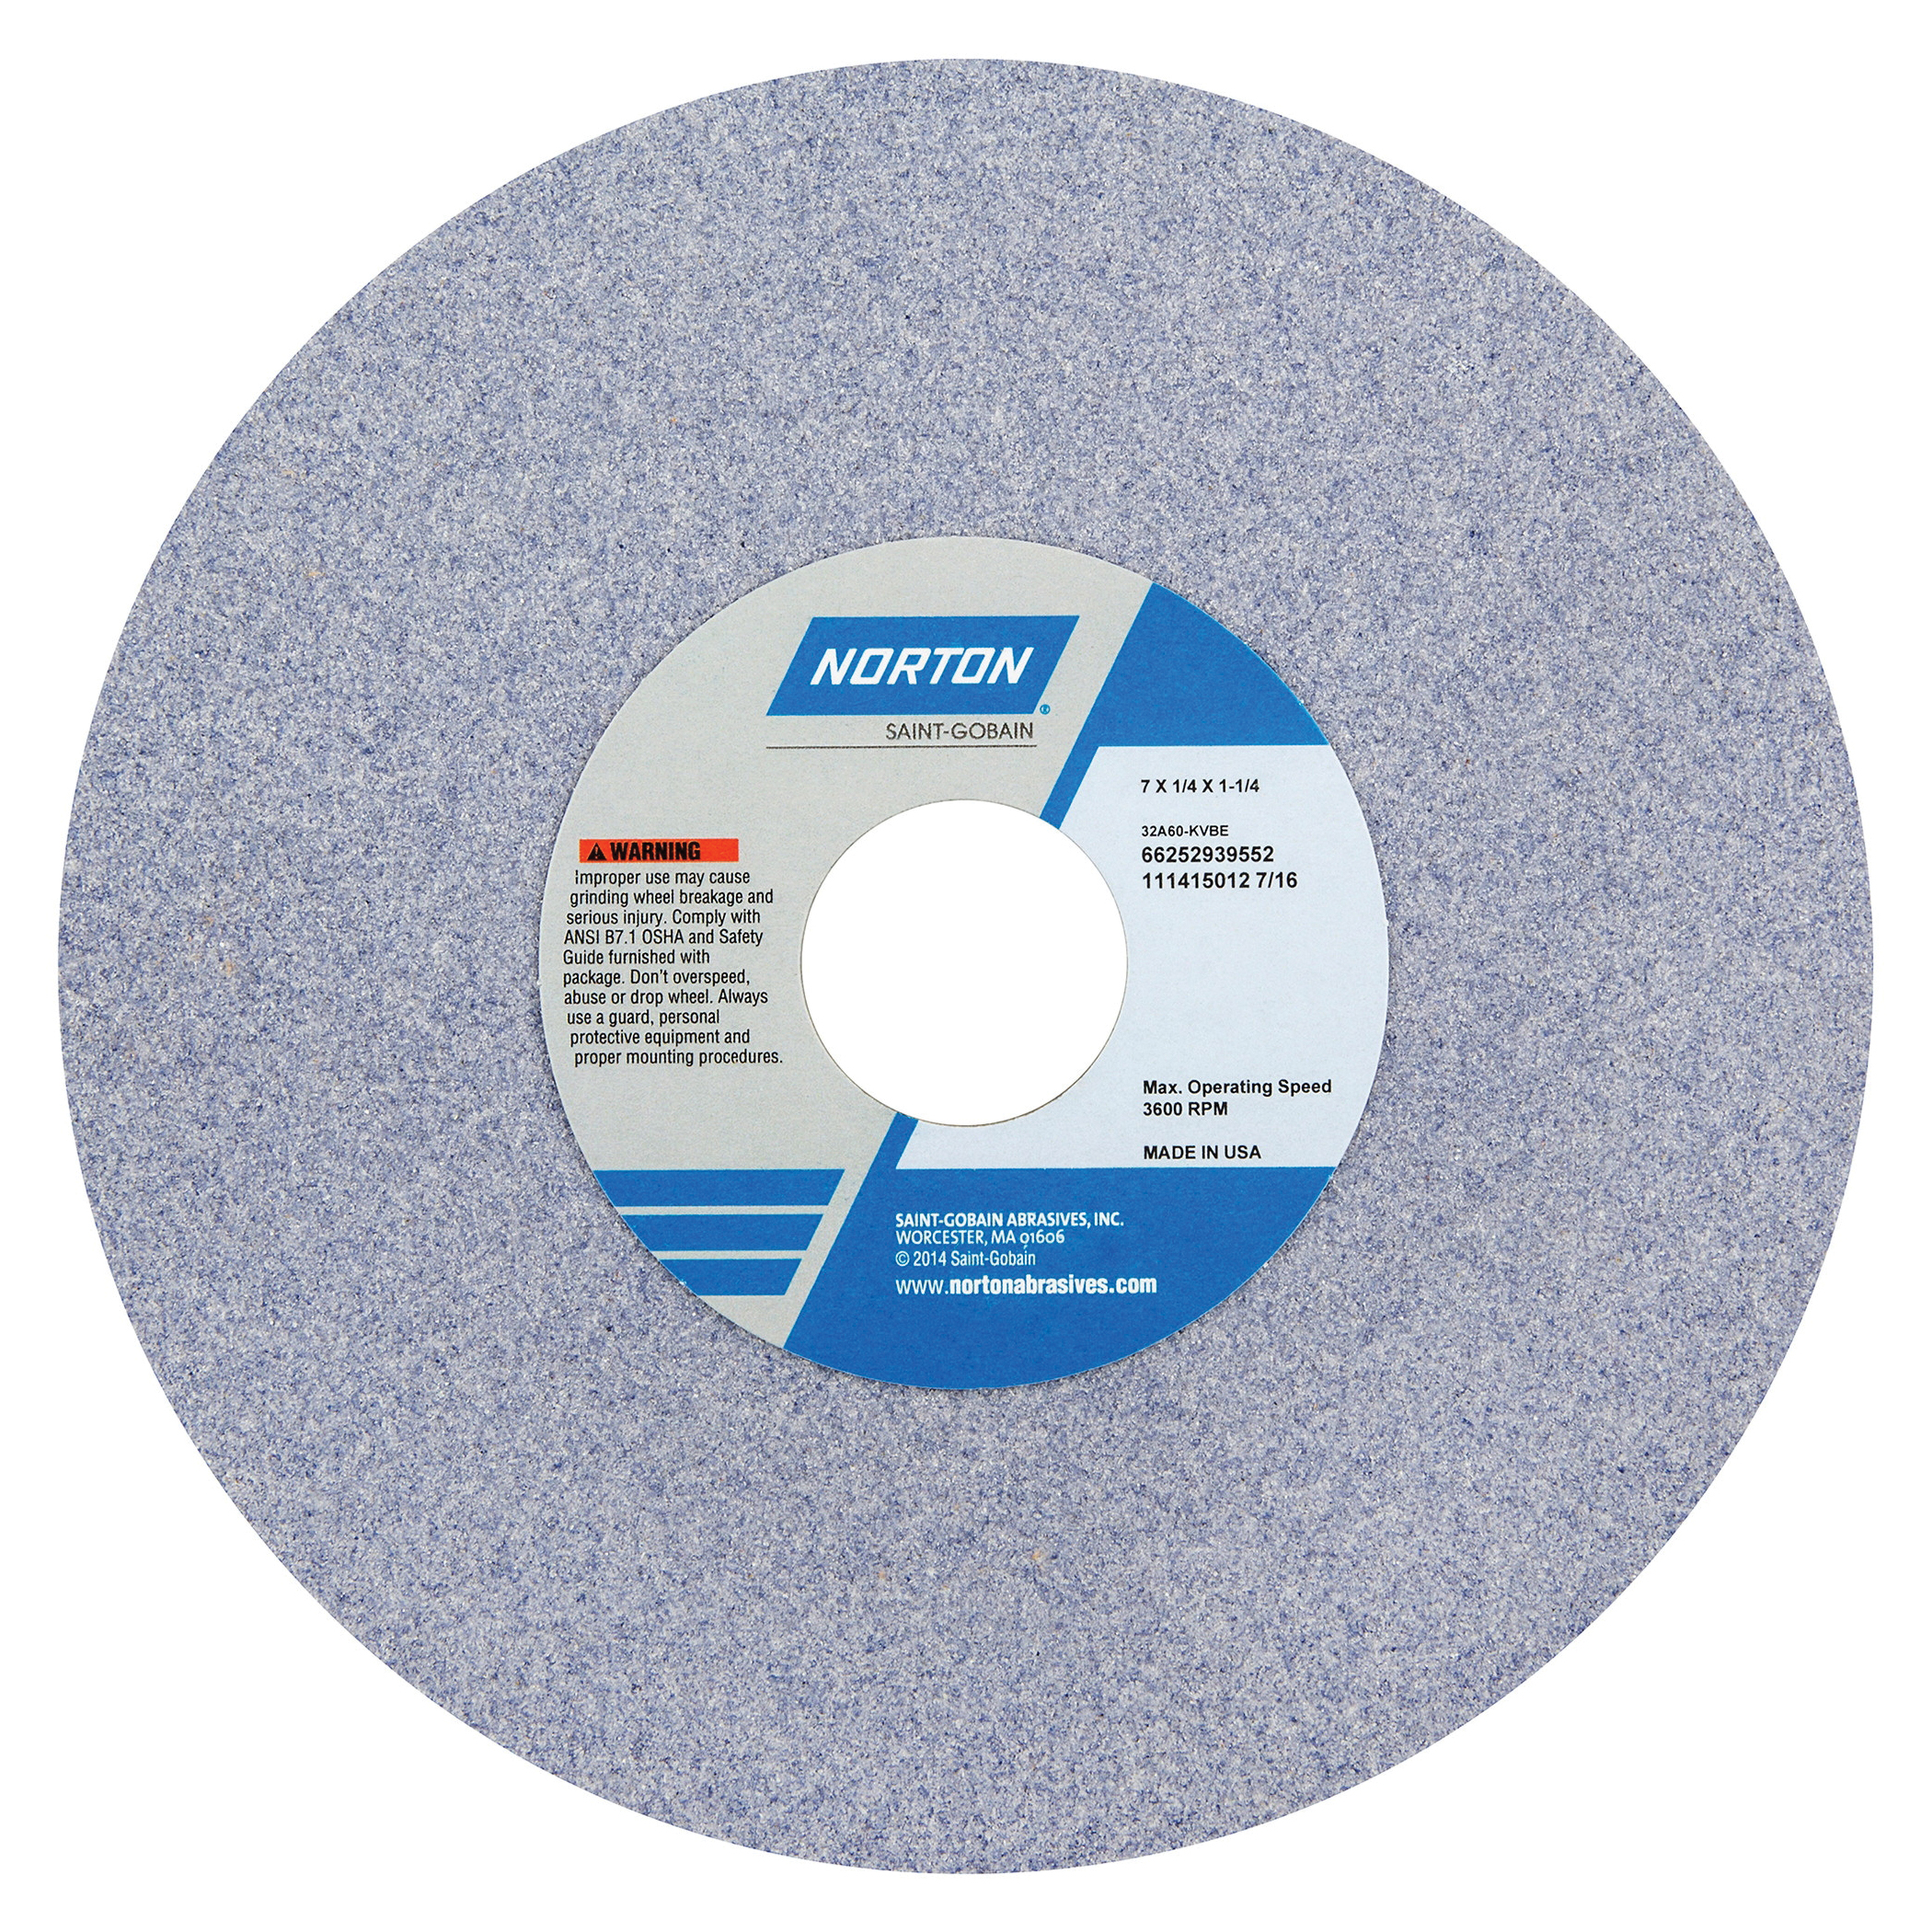 Norton® 66252939689 32A Straight Toolroom Wheel, 7 in Dia x 1/4 in THK, 1-1/4 in Center Hole, 220 Grit, Aluminum Oxide Abrasive